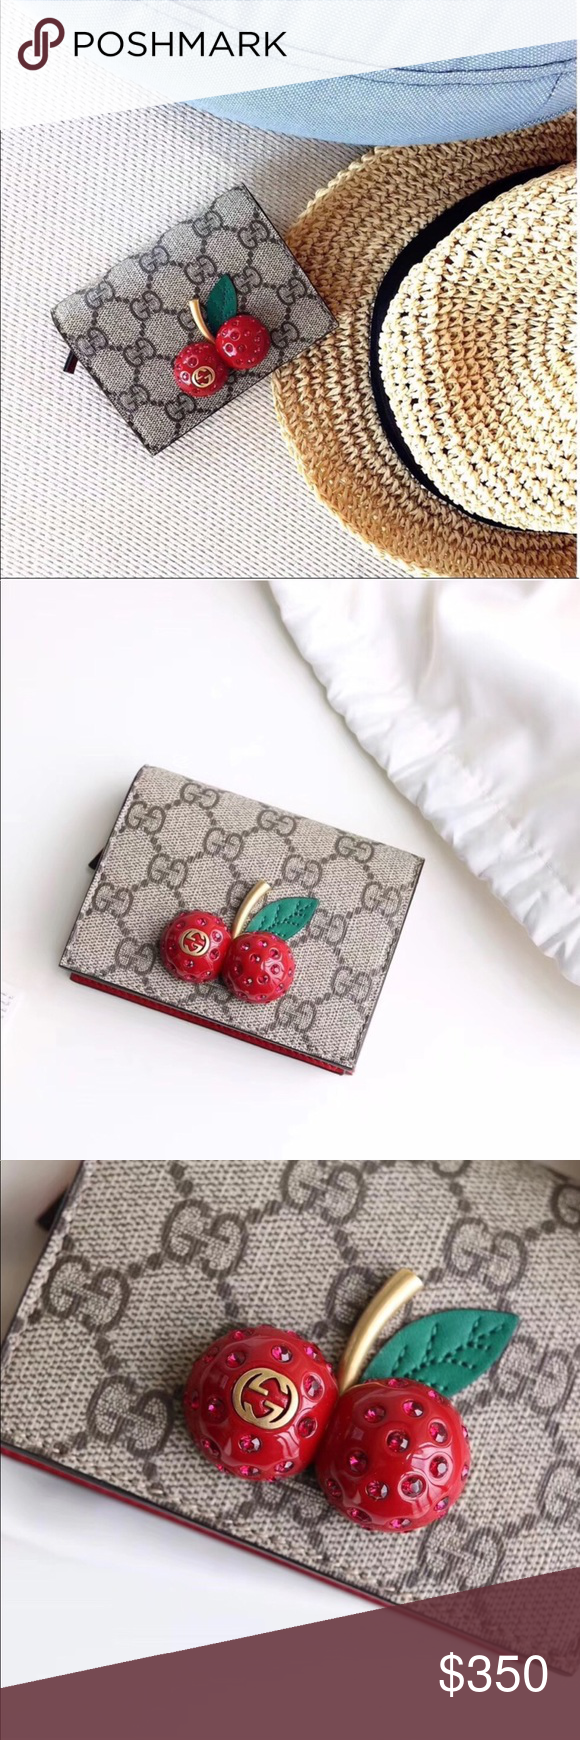 Gg Supreme Card Case With Cherries Mint Condition For Only Few Days Small Wallet